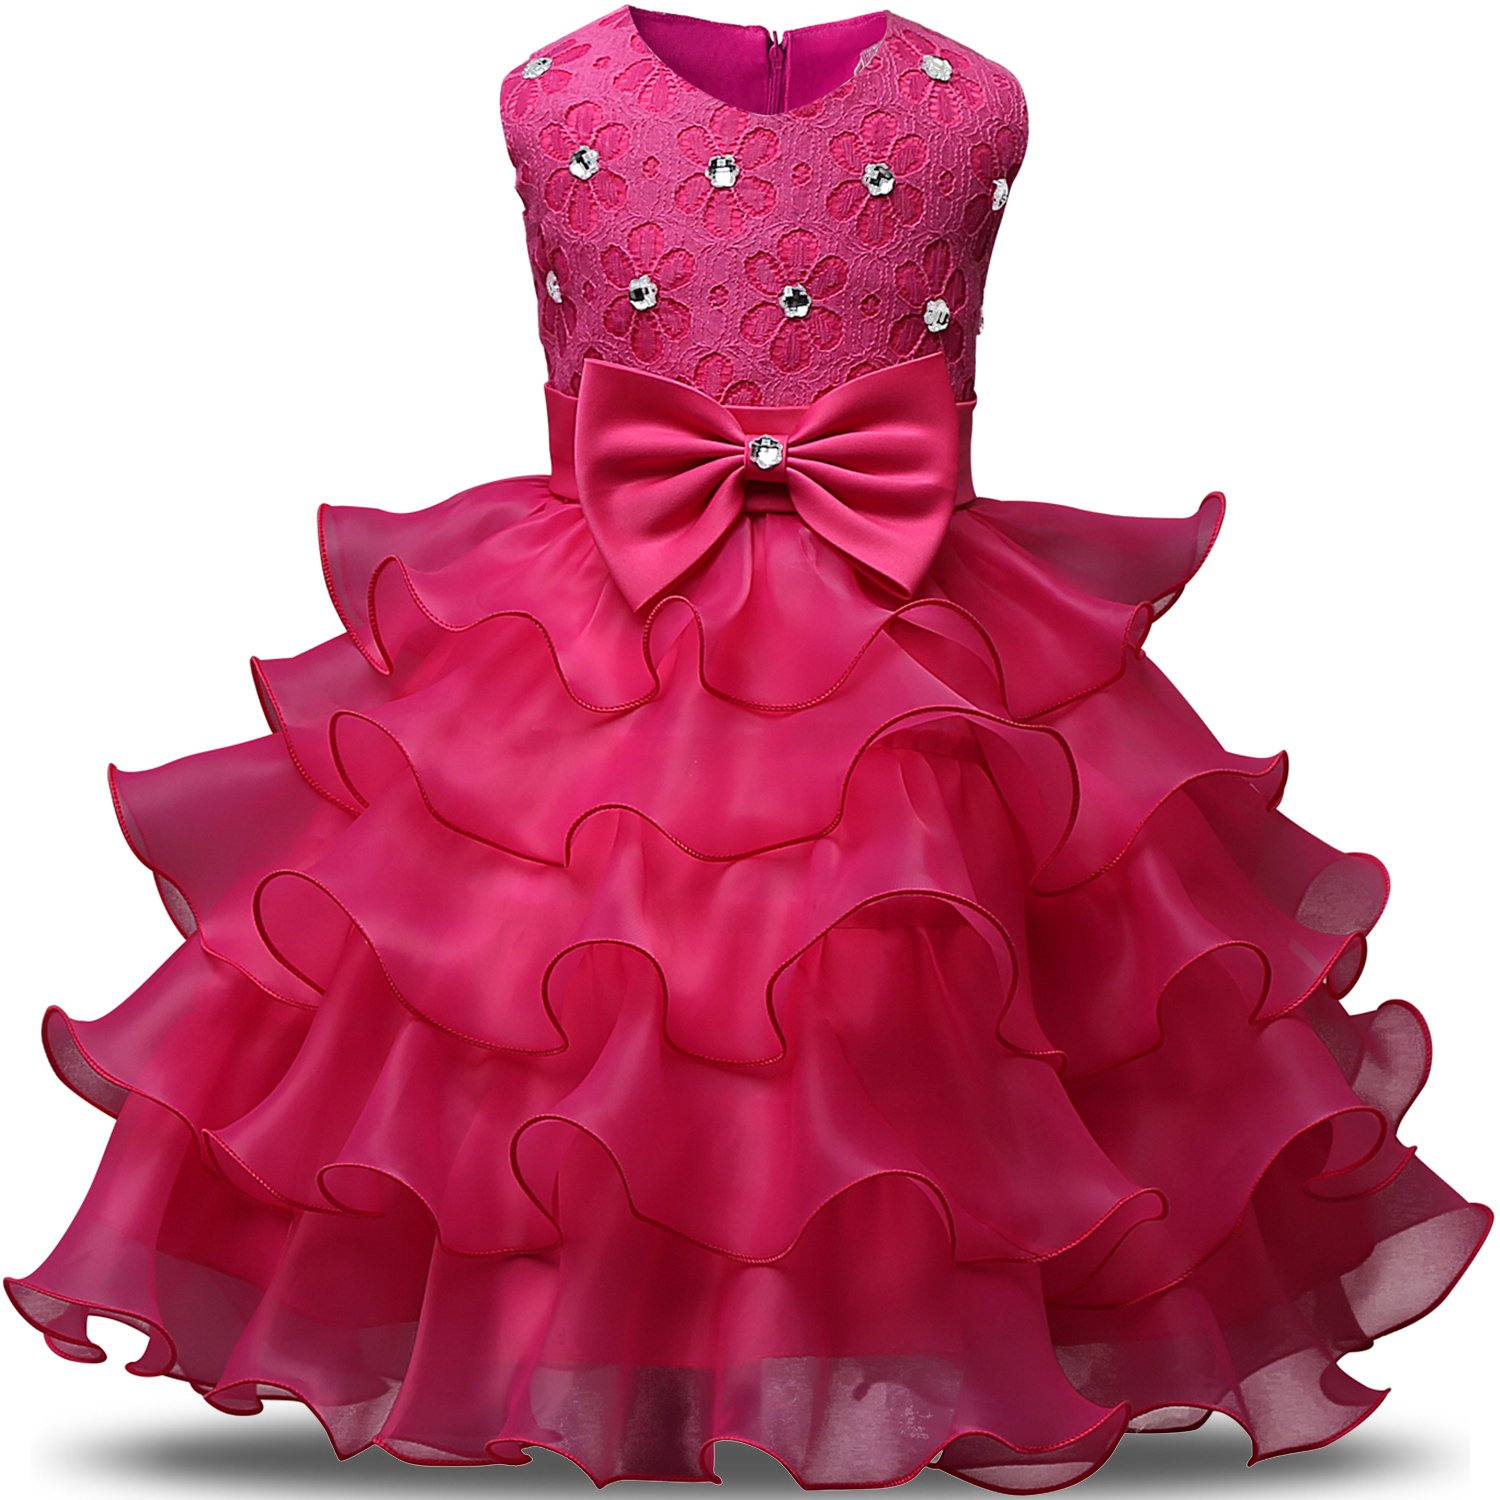 8d0053071 Galleon - NNJXD Girl Dress Kids Ruffles Lace Party Wedding Dresses Size 4-5  Years Rose(120)